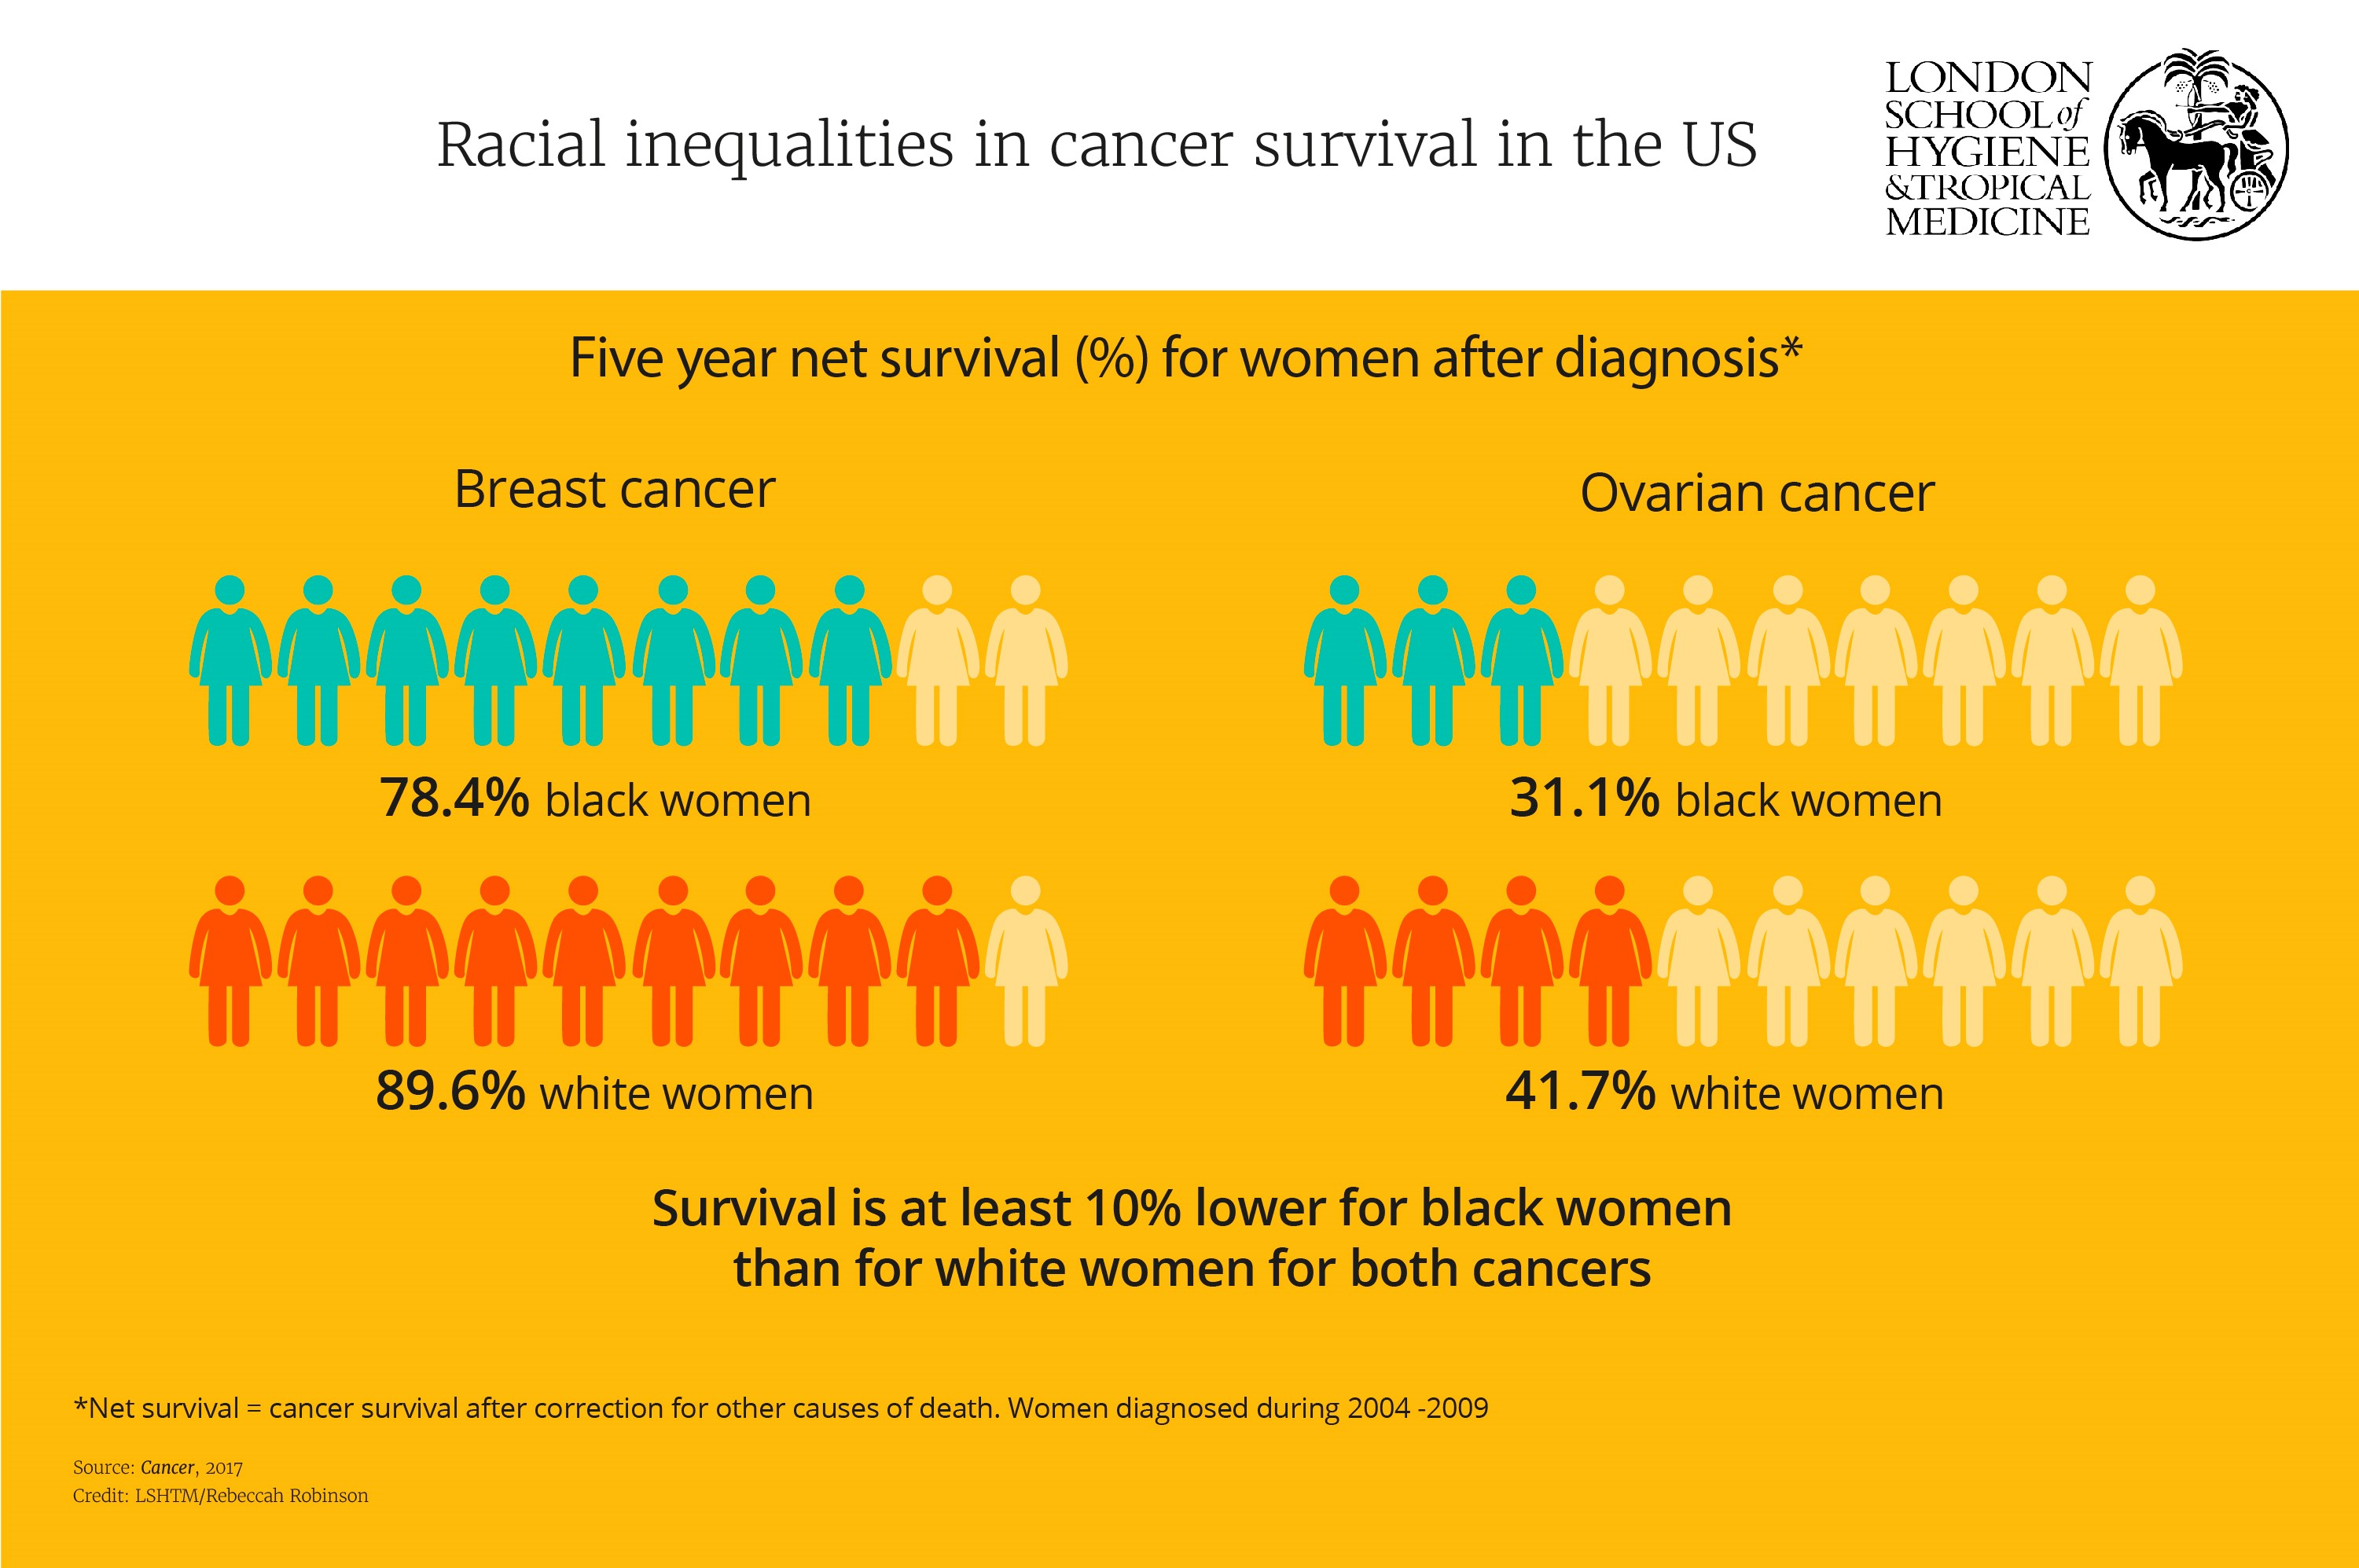 Racial inequalities in cancer survival in the US